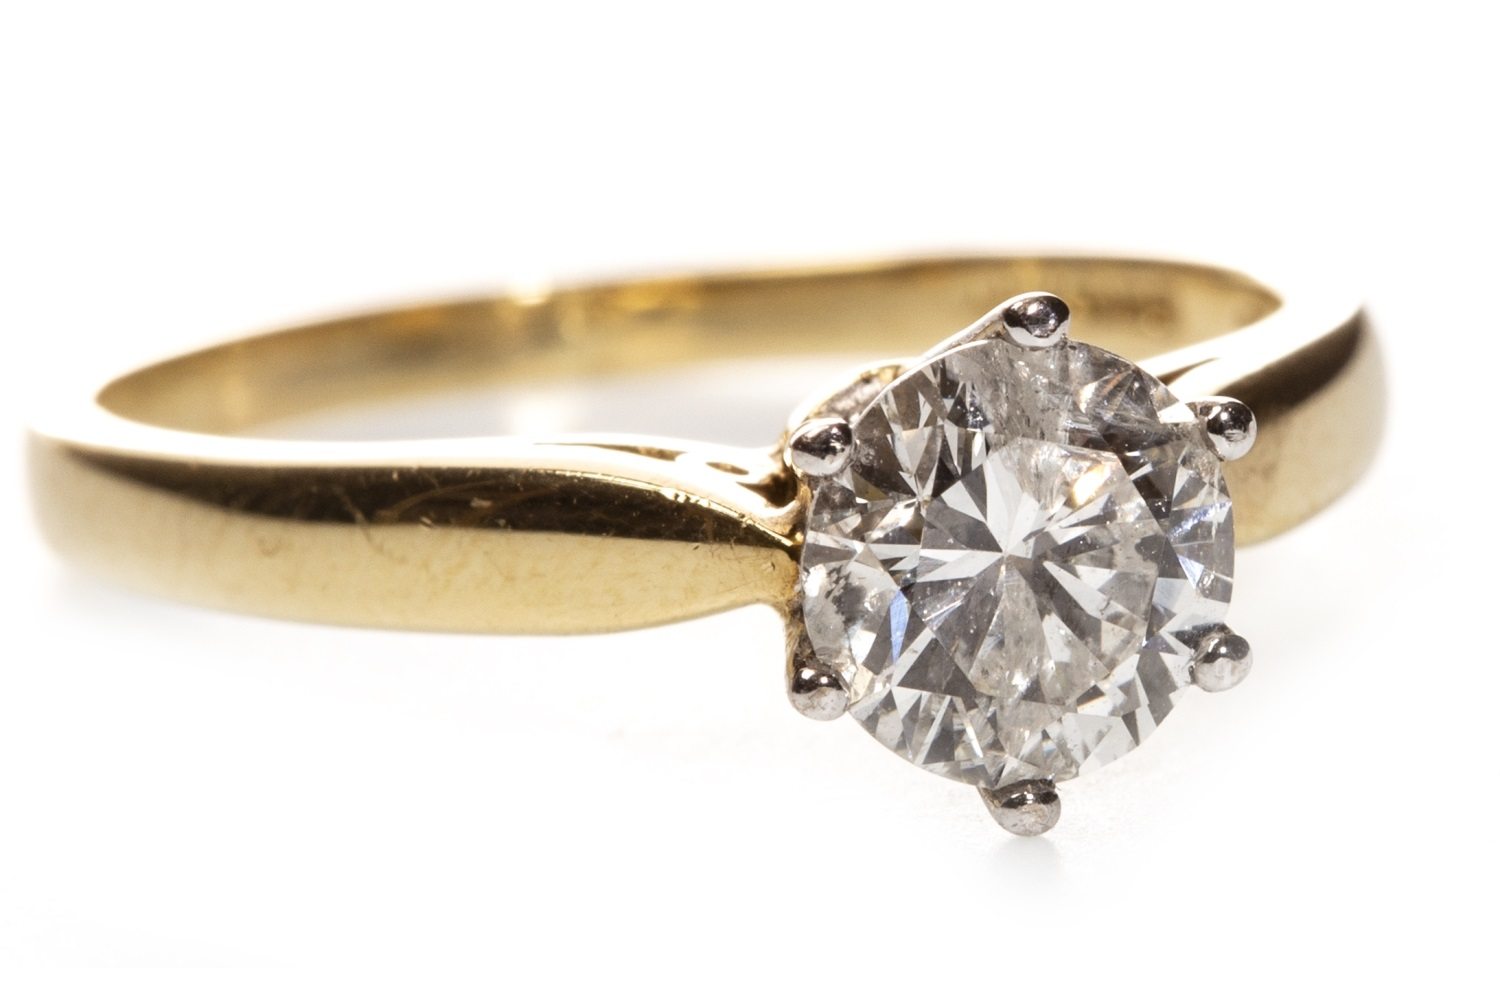 Lot 188 - A DIAMOND SOLITAIRE RING